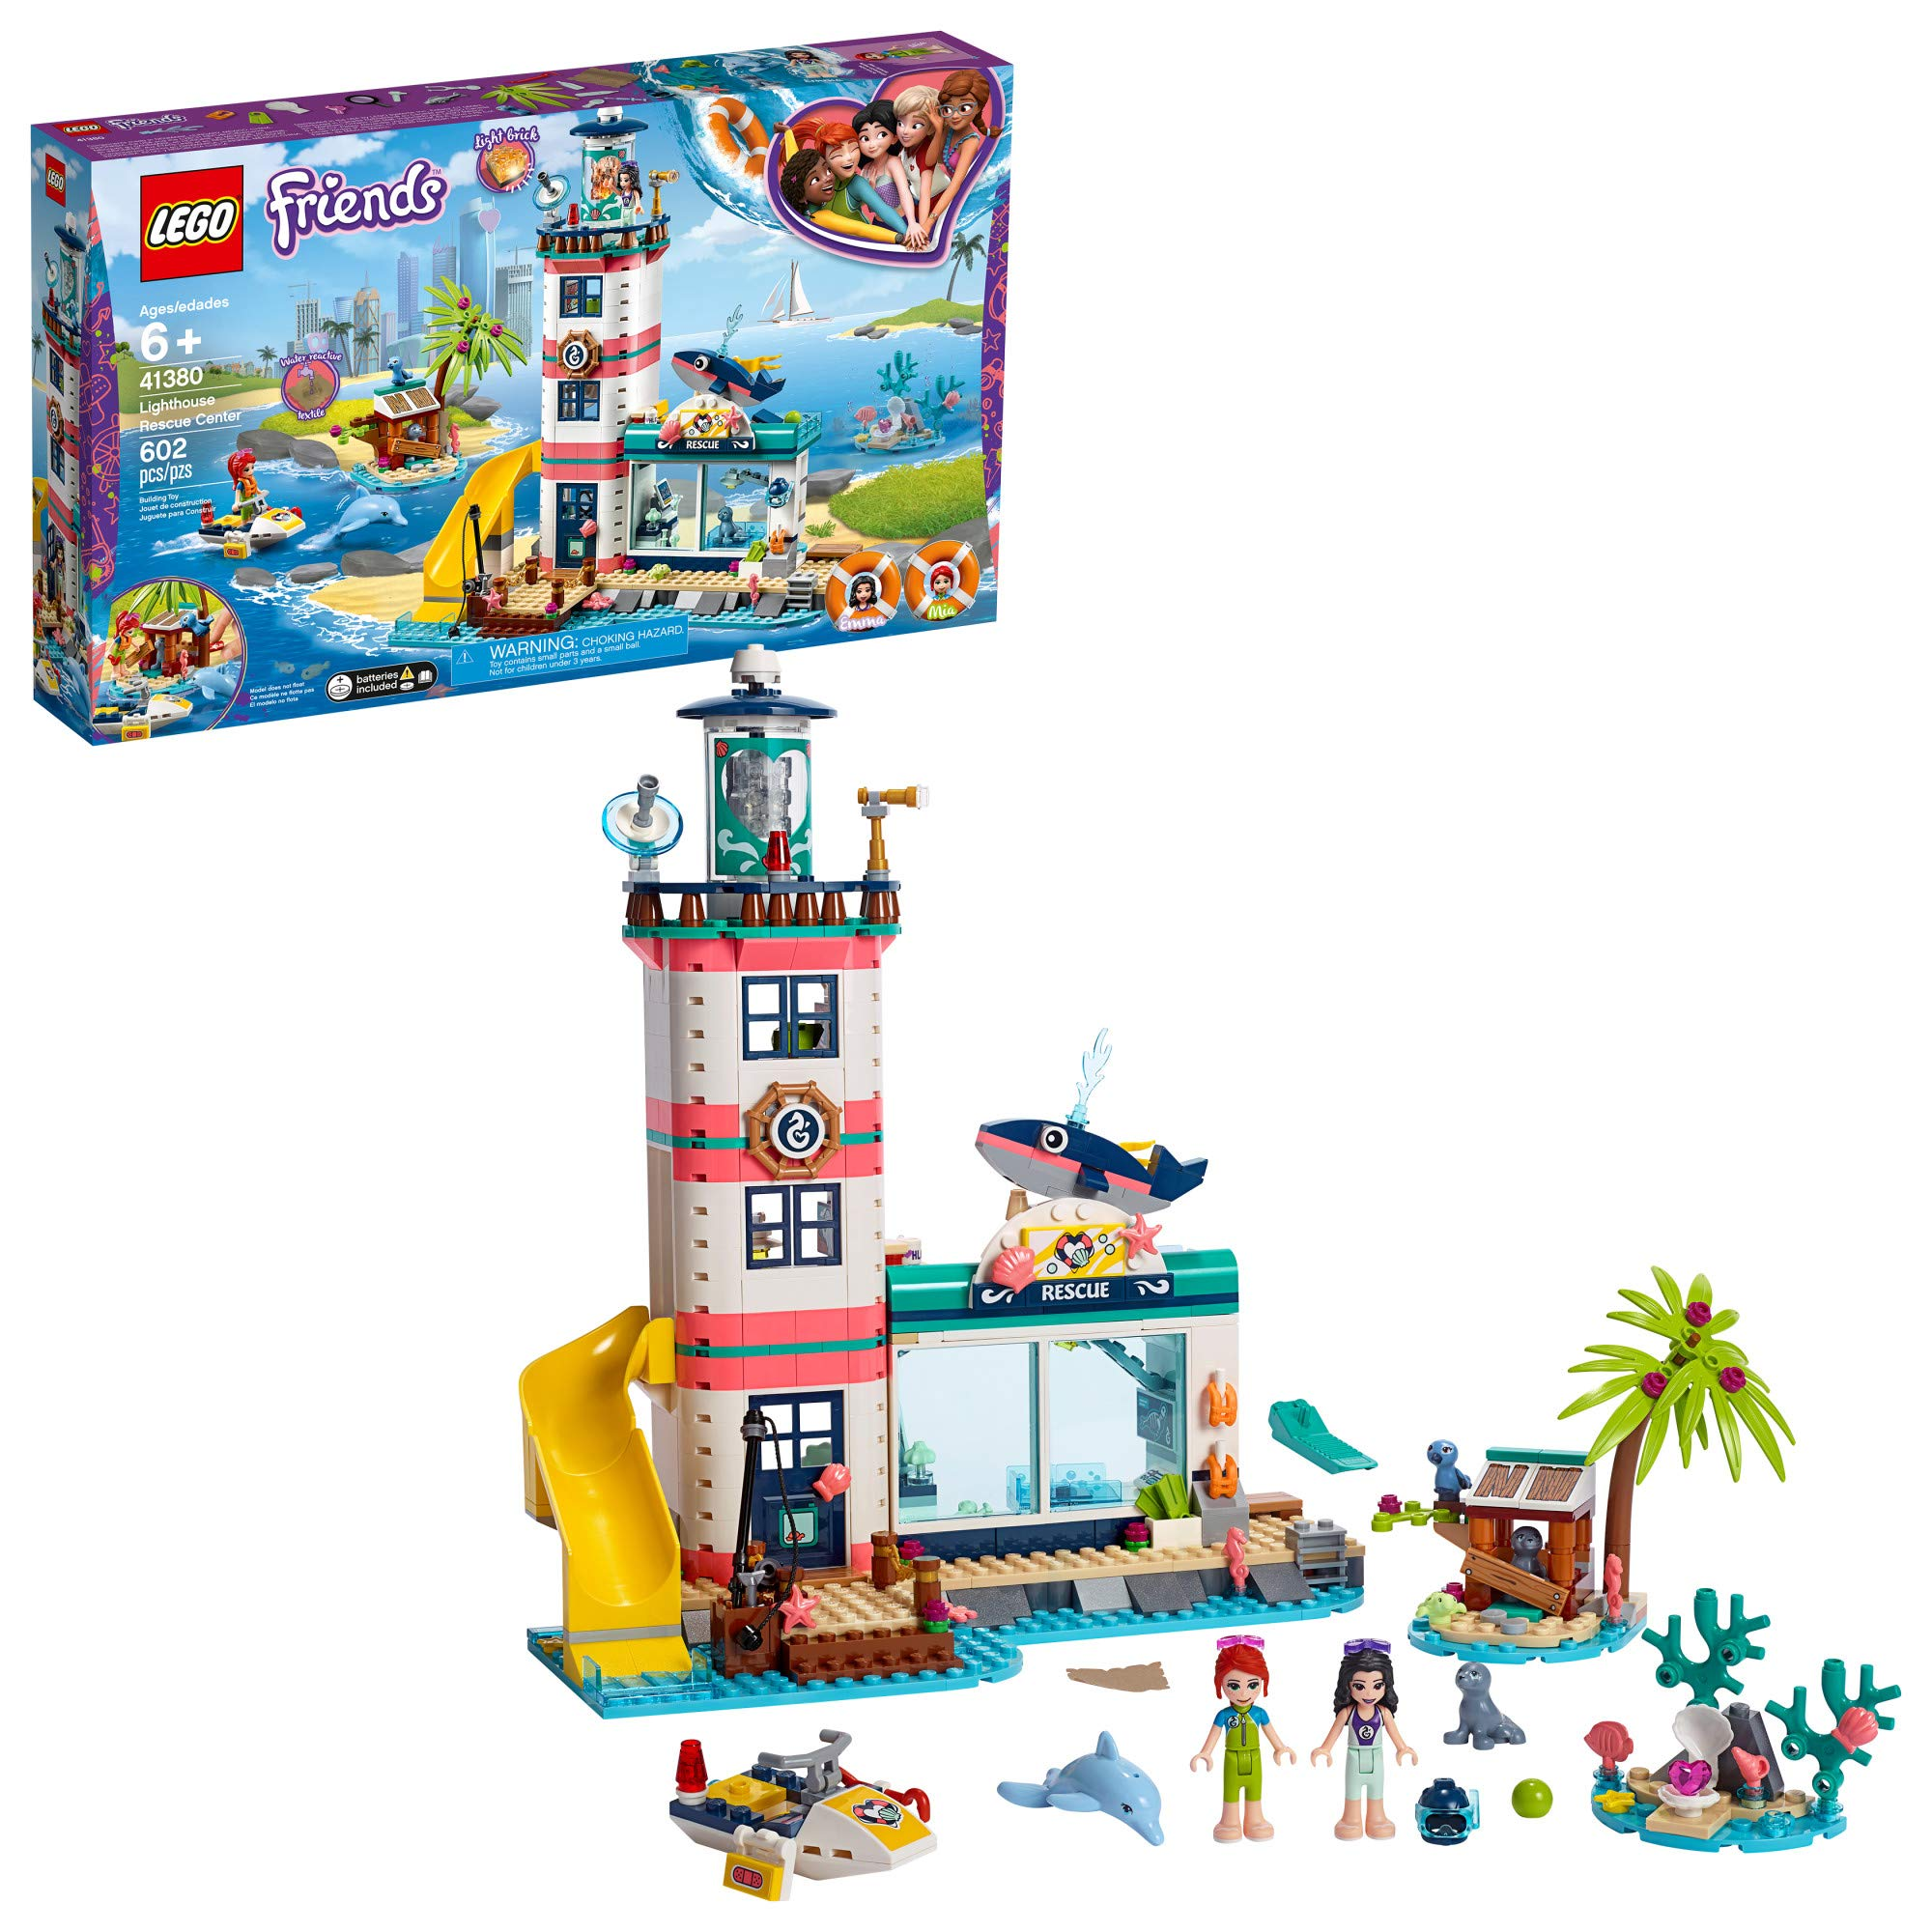 LEGO Friends Lighthouse Rescue Center 41380 Building Kit with Lighthouse Model and Tropical Island Includes Mini Dolls and Toy Animals for Pretend Play (602 Pieces) by LEGO